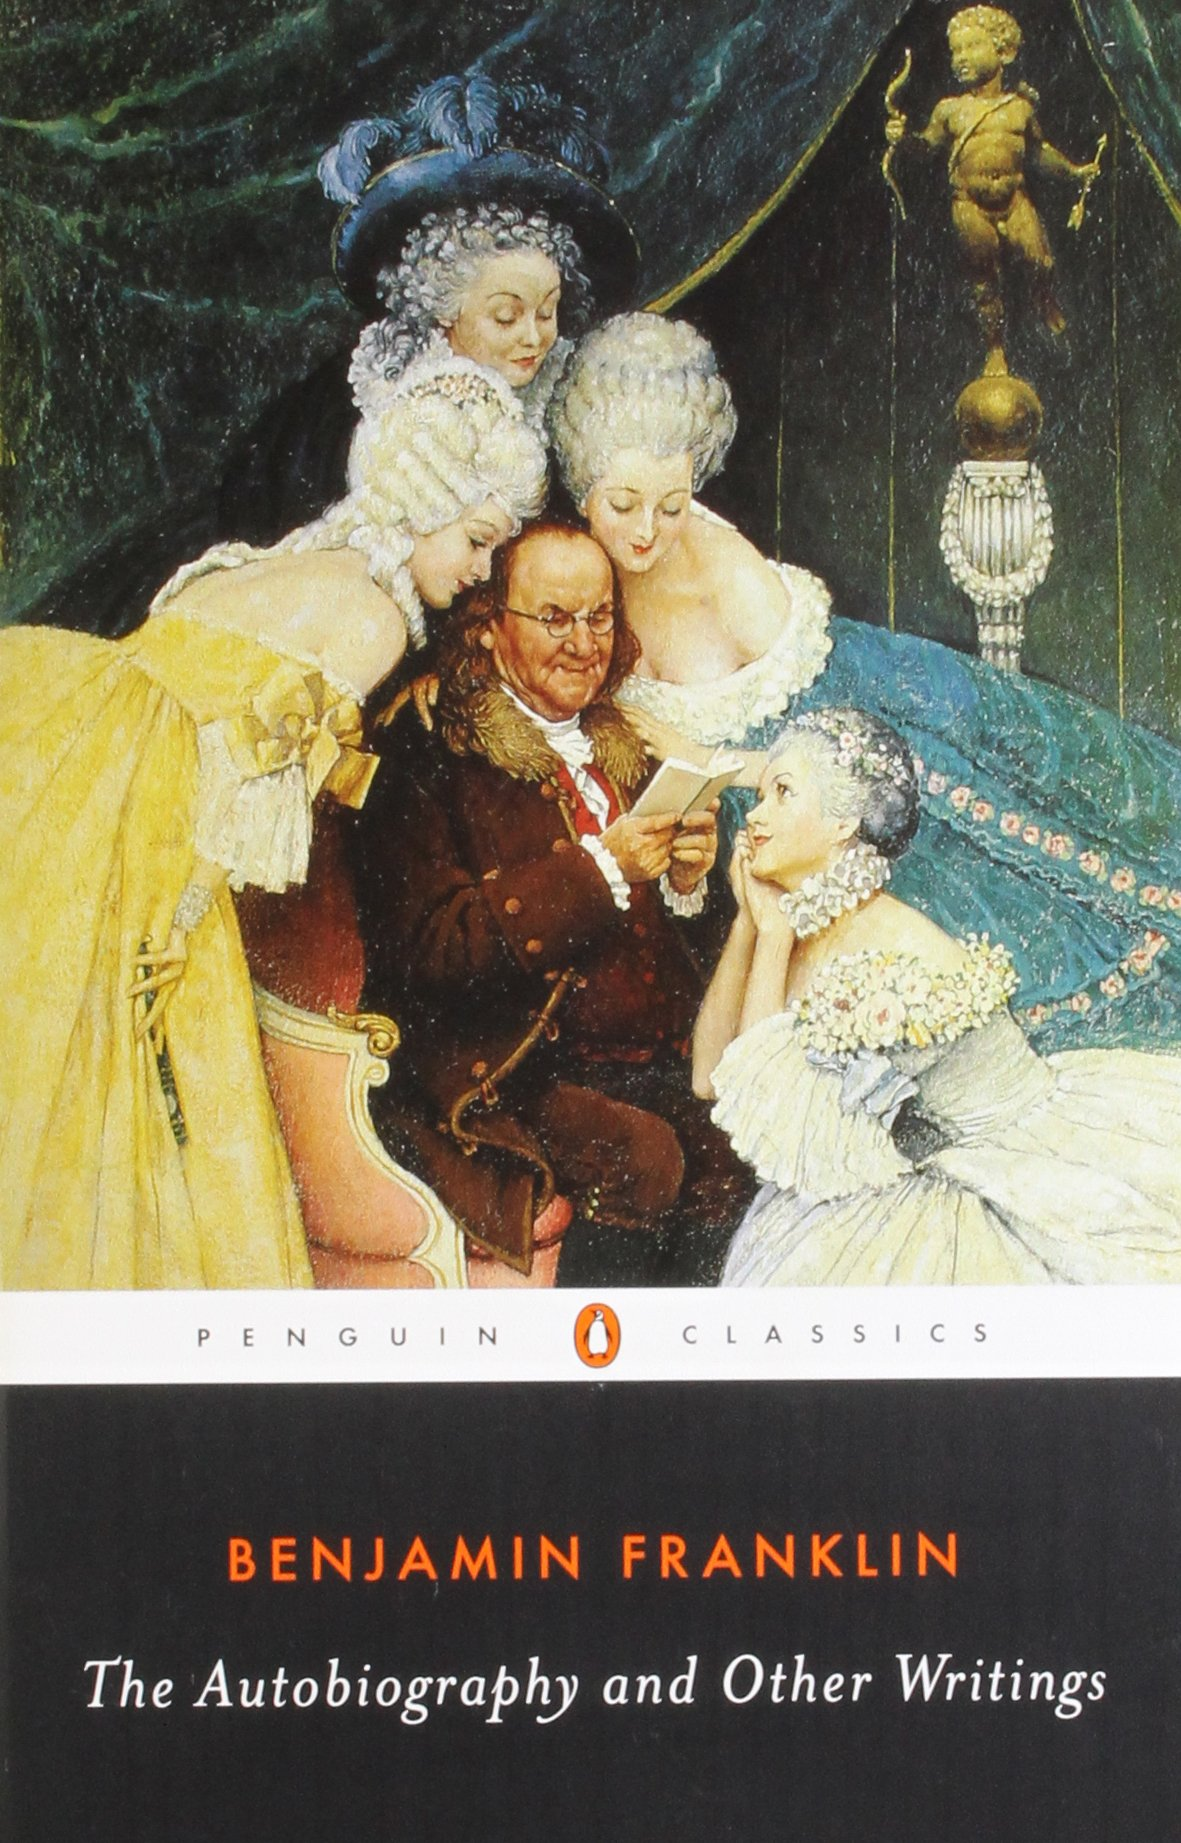 com the autobiography and other writings penguin classics com the autobiography and other writings penguin classics 9780142437605 benjamin franklin kenneth a silverman books